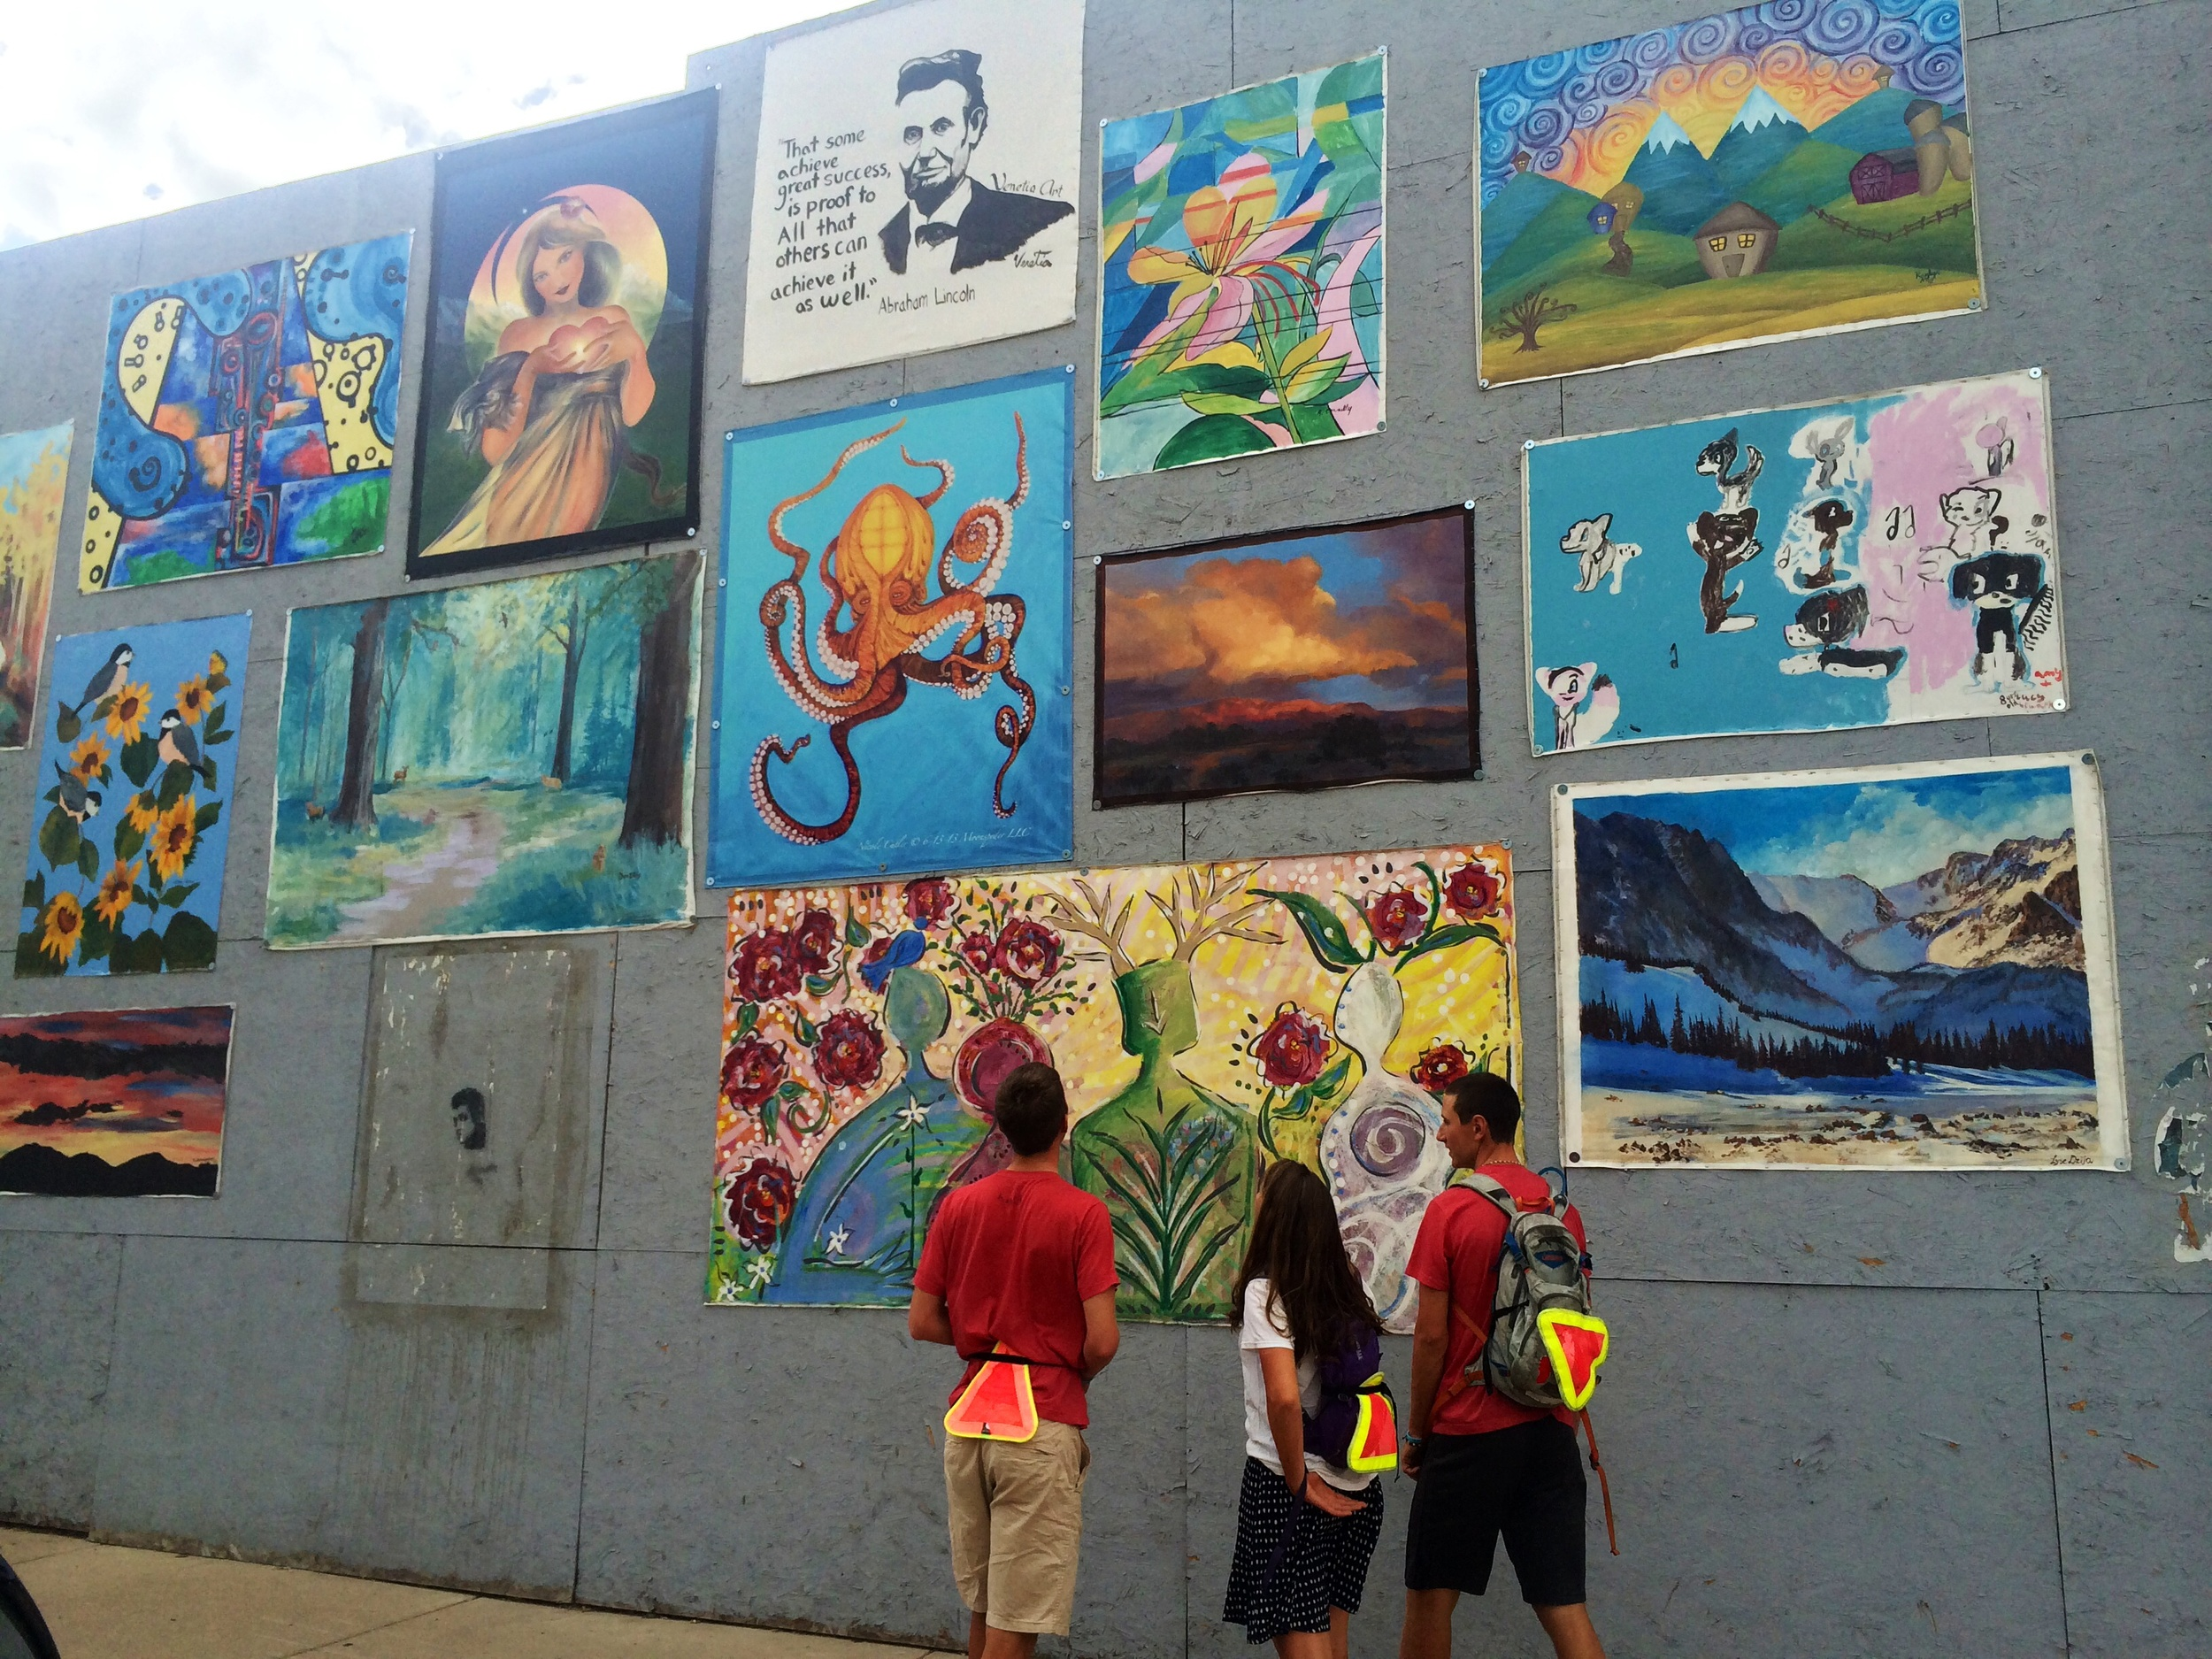 Looking at the public art in Loveland, CO